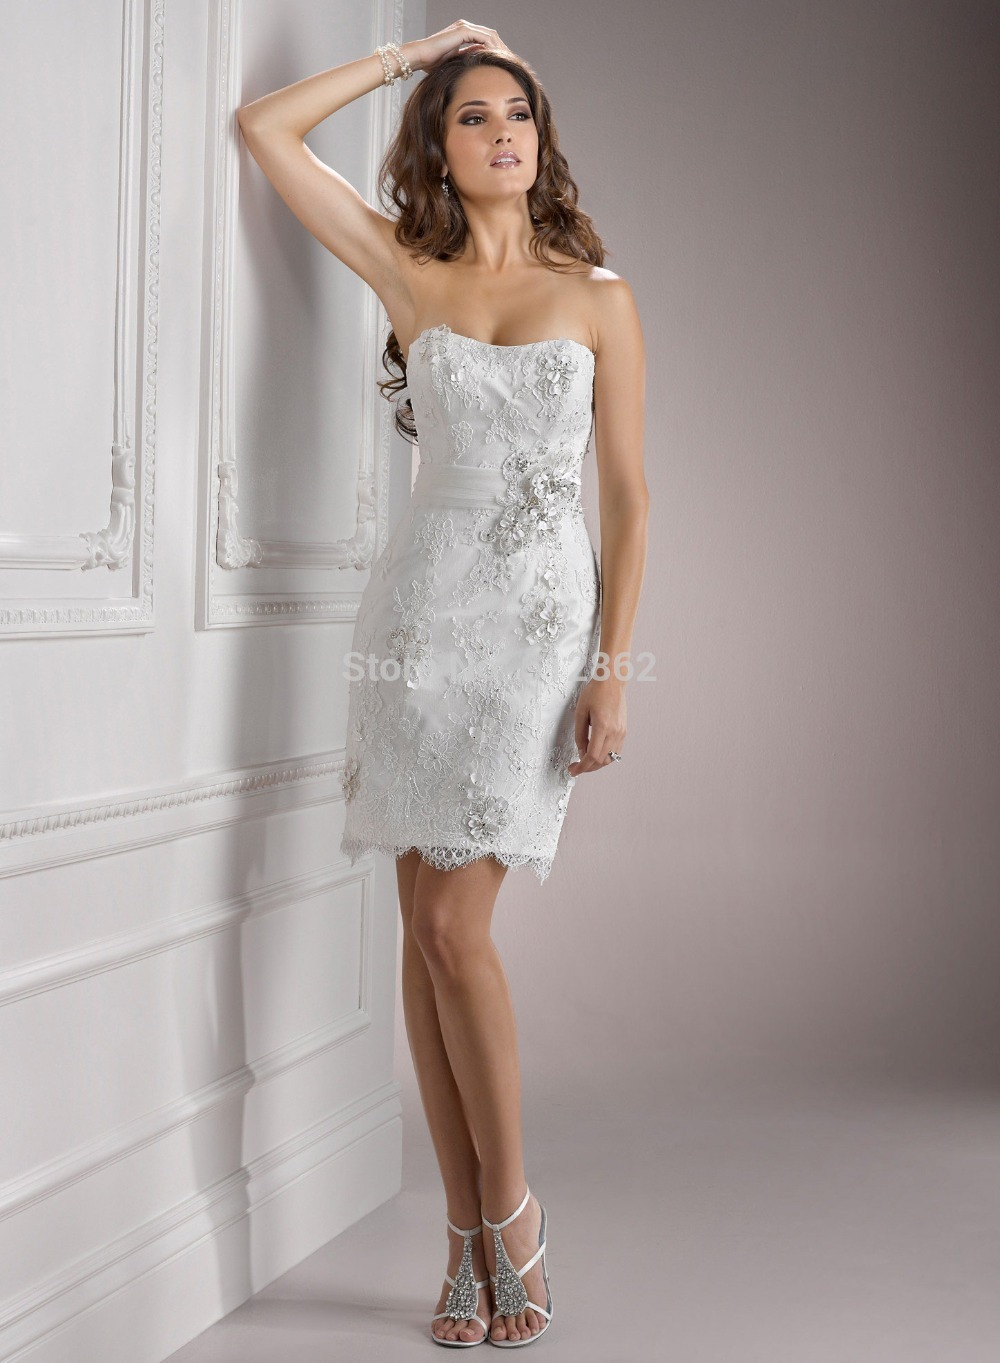 Strapless Sheath Beaded Short White Lace Prom Dress-in ...